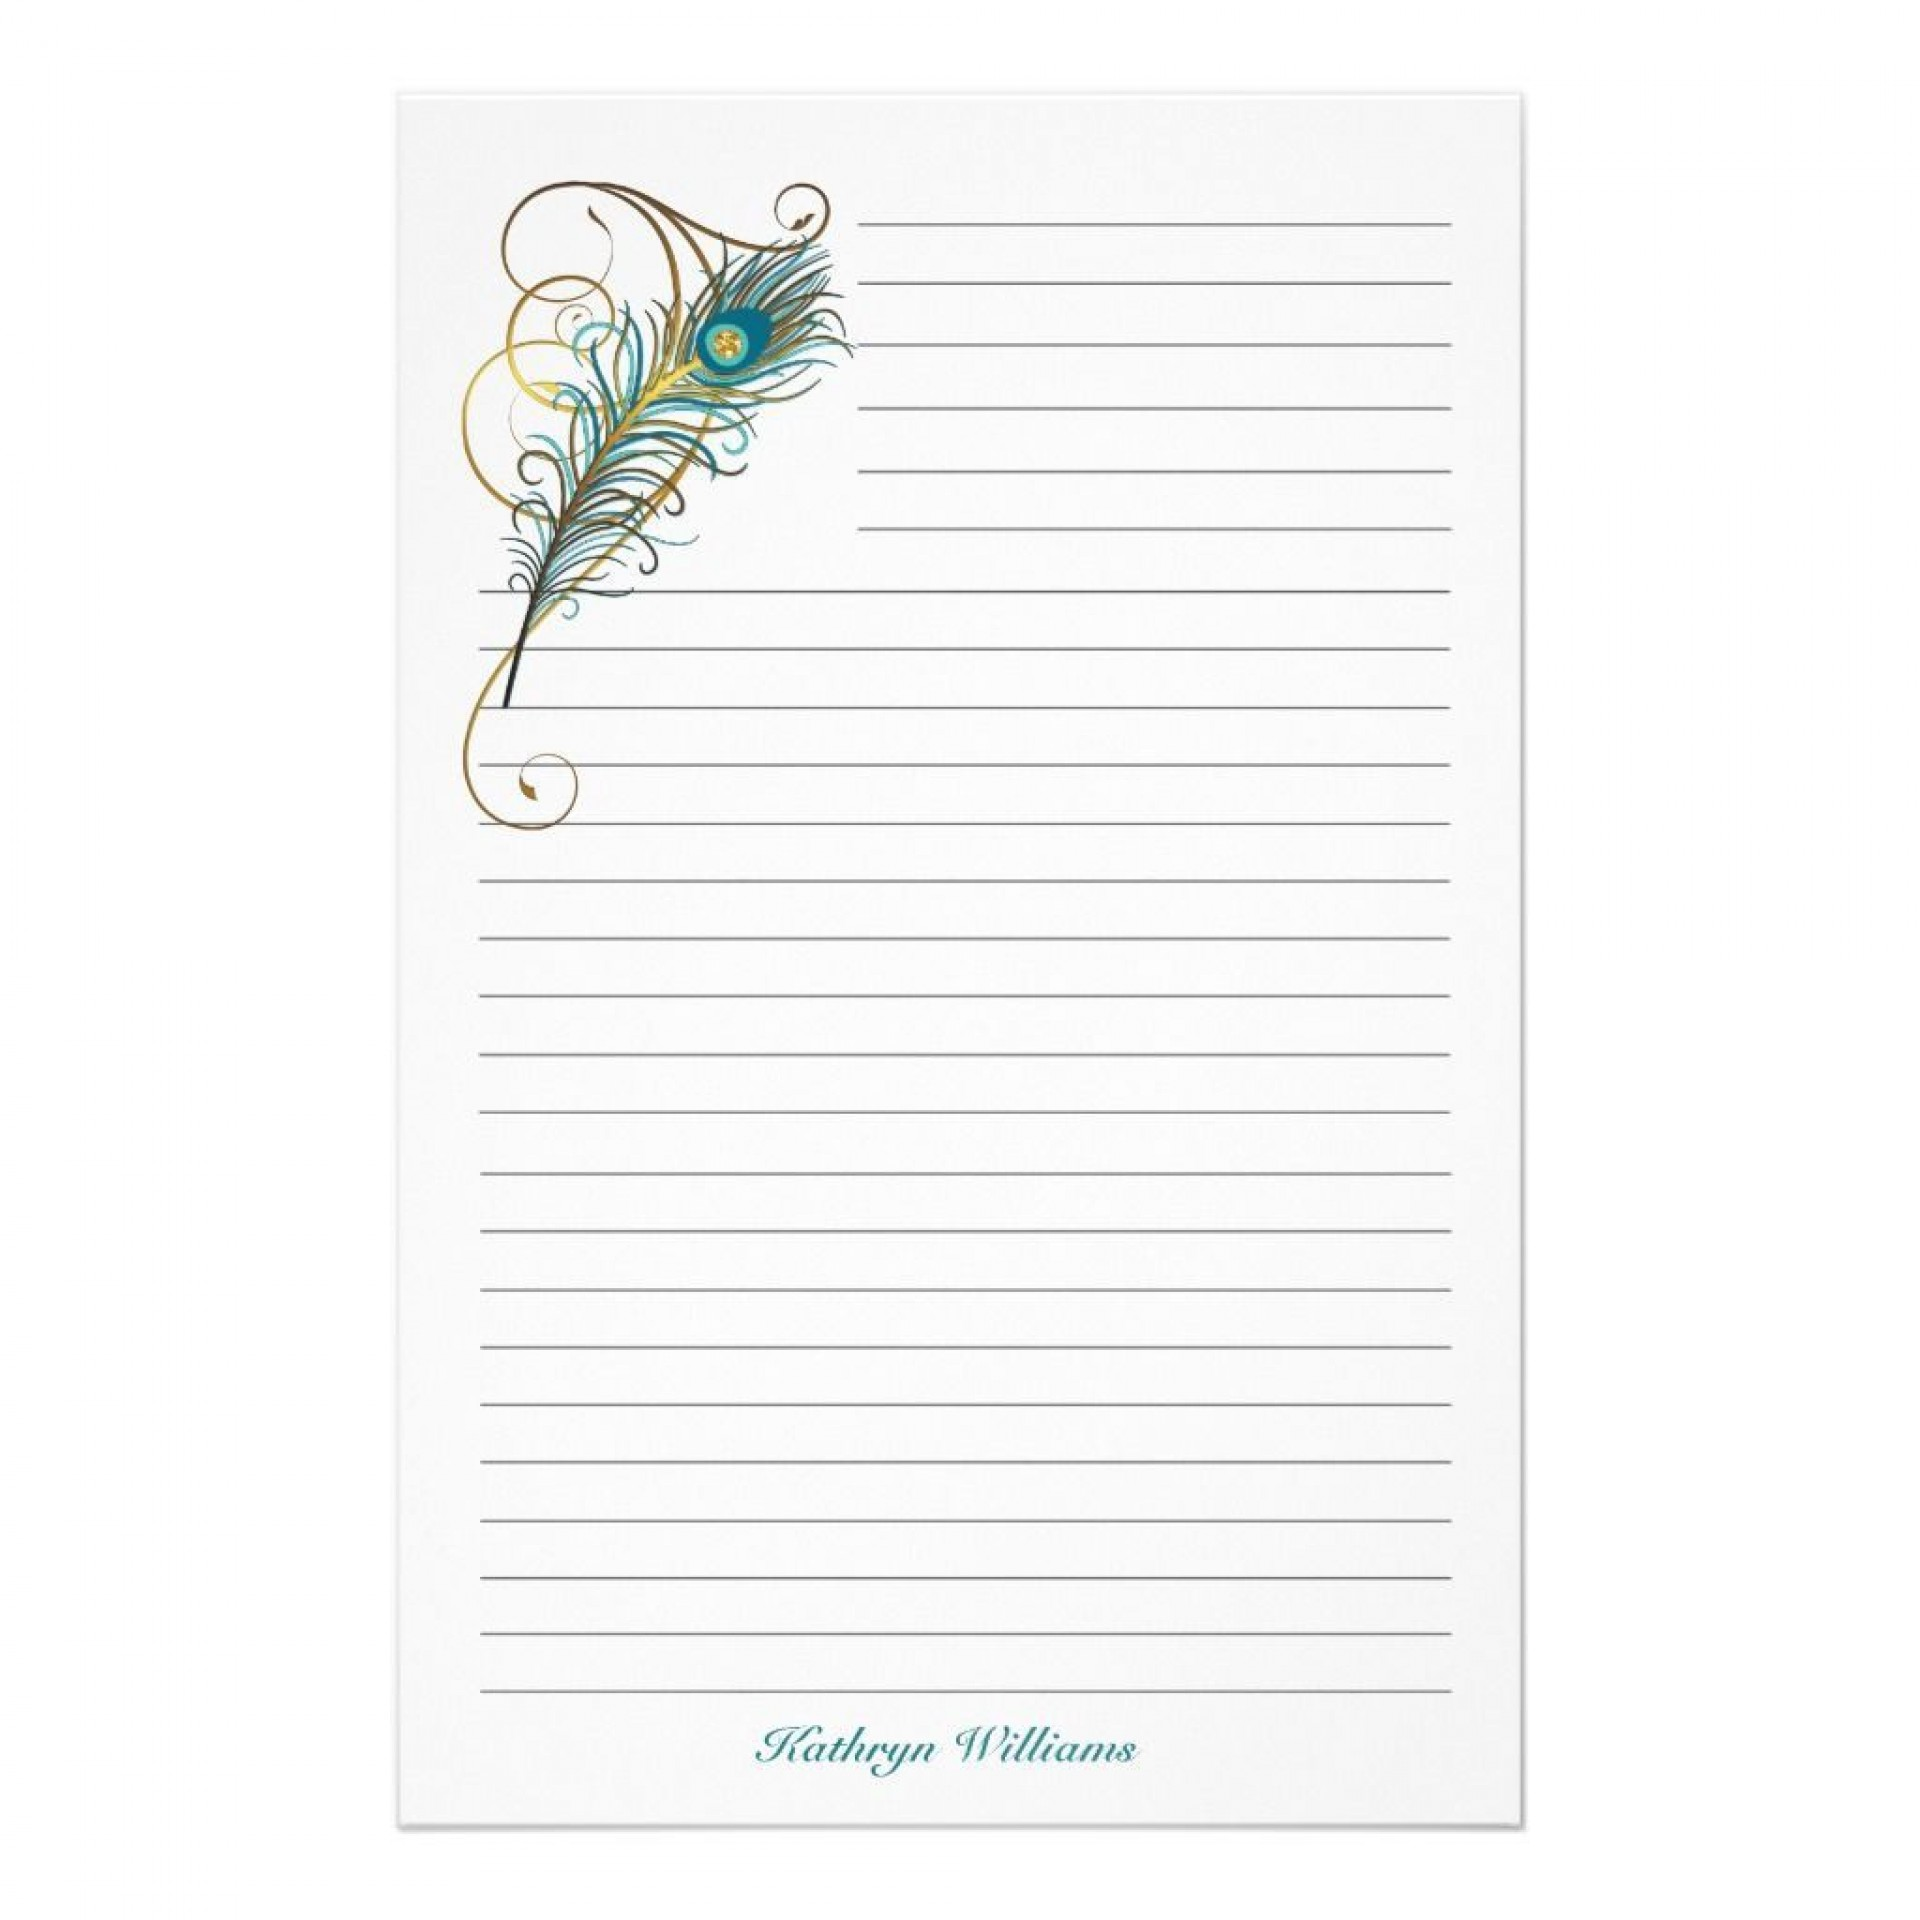 000 Marvelou Free Printable Stationery Paper Template Example  Templates1920